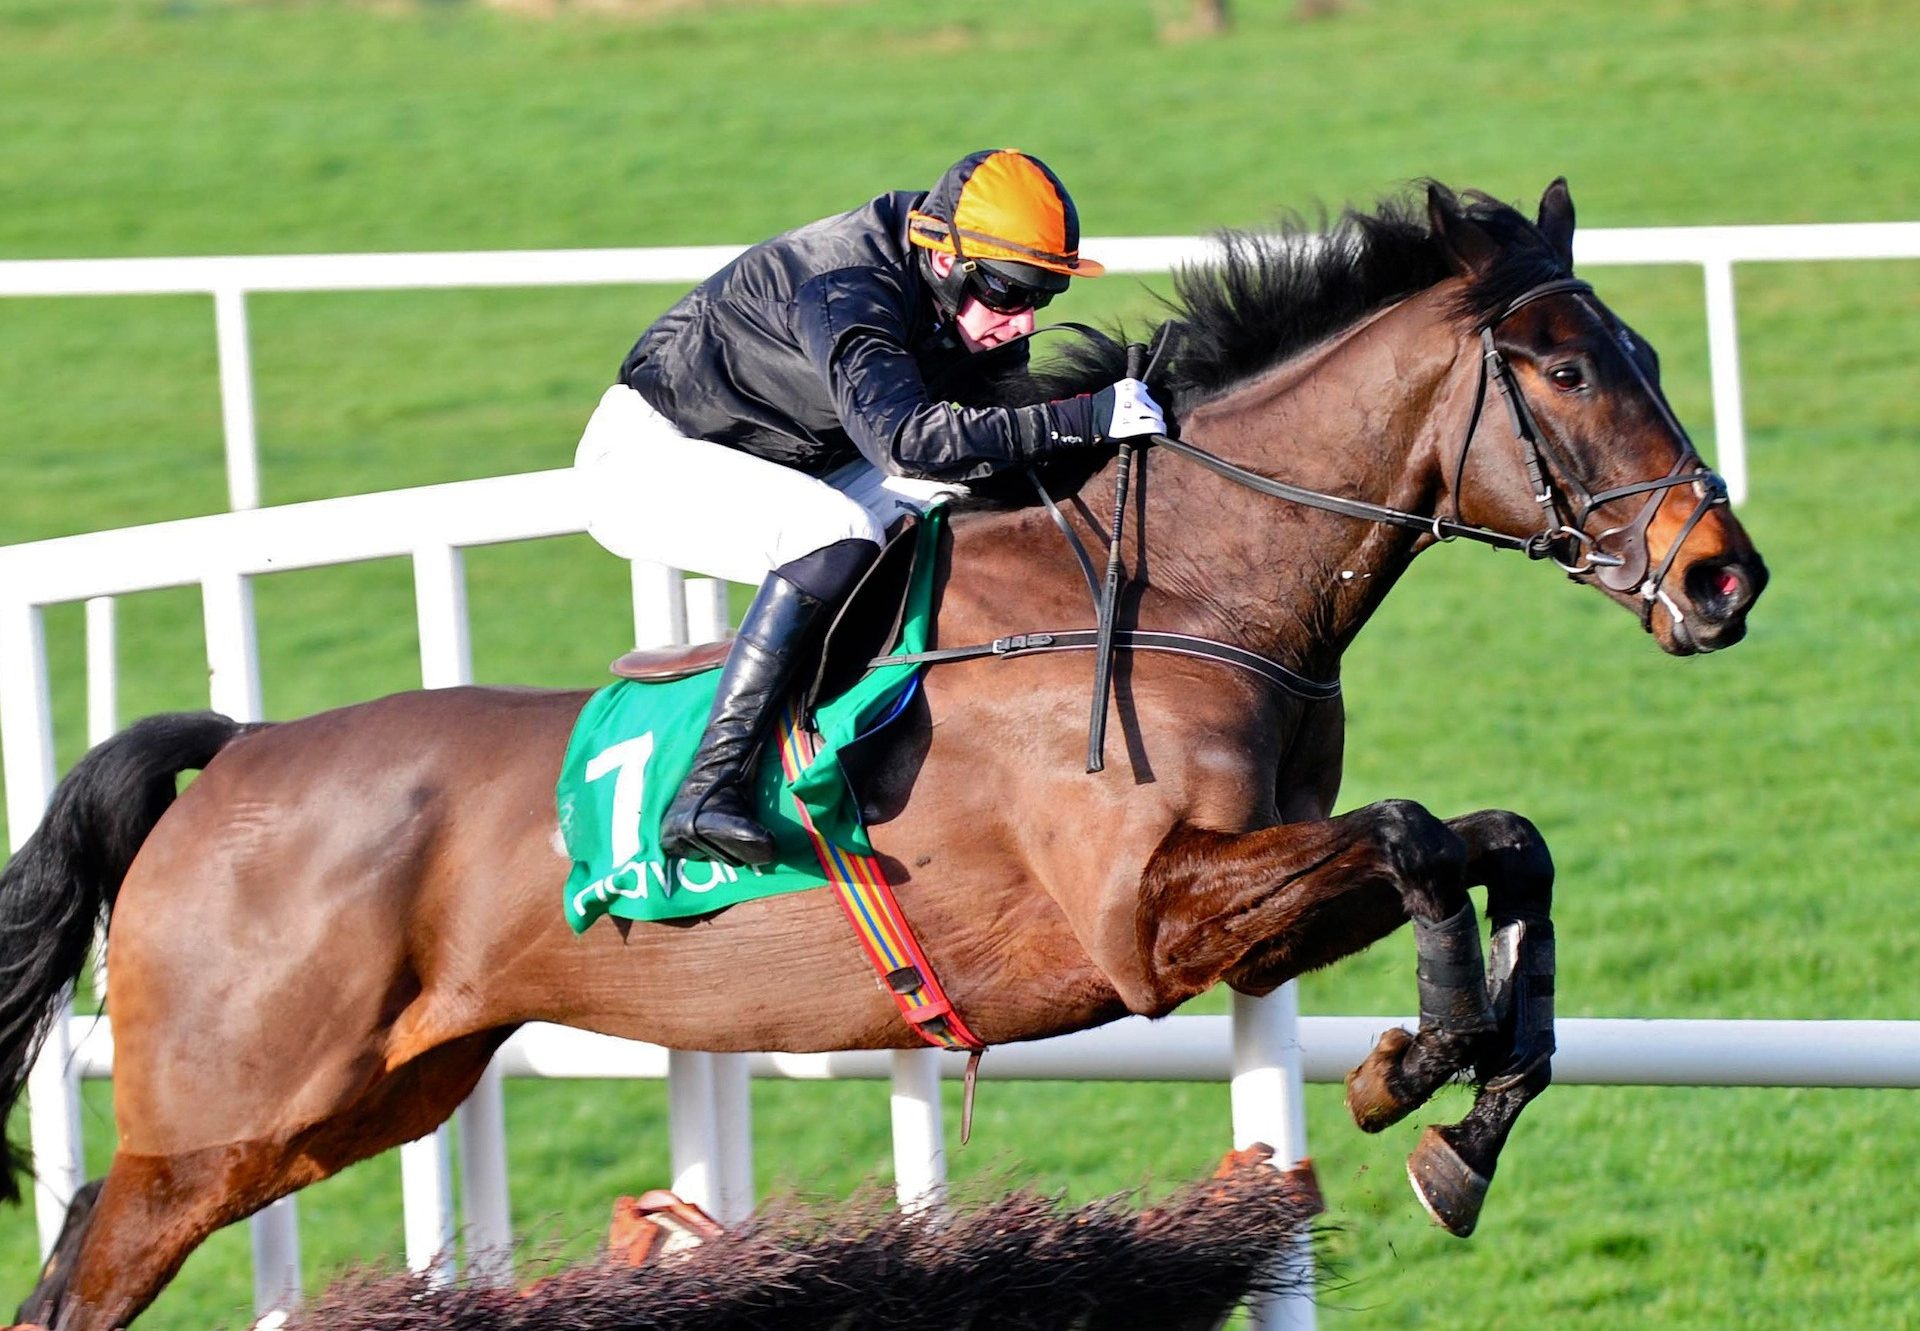 Mr Hendricks (Milan) Wins The Maiden Hurdle At Navan